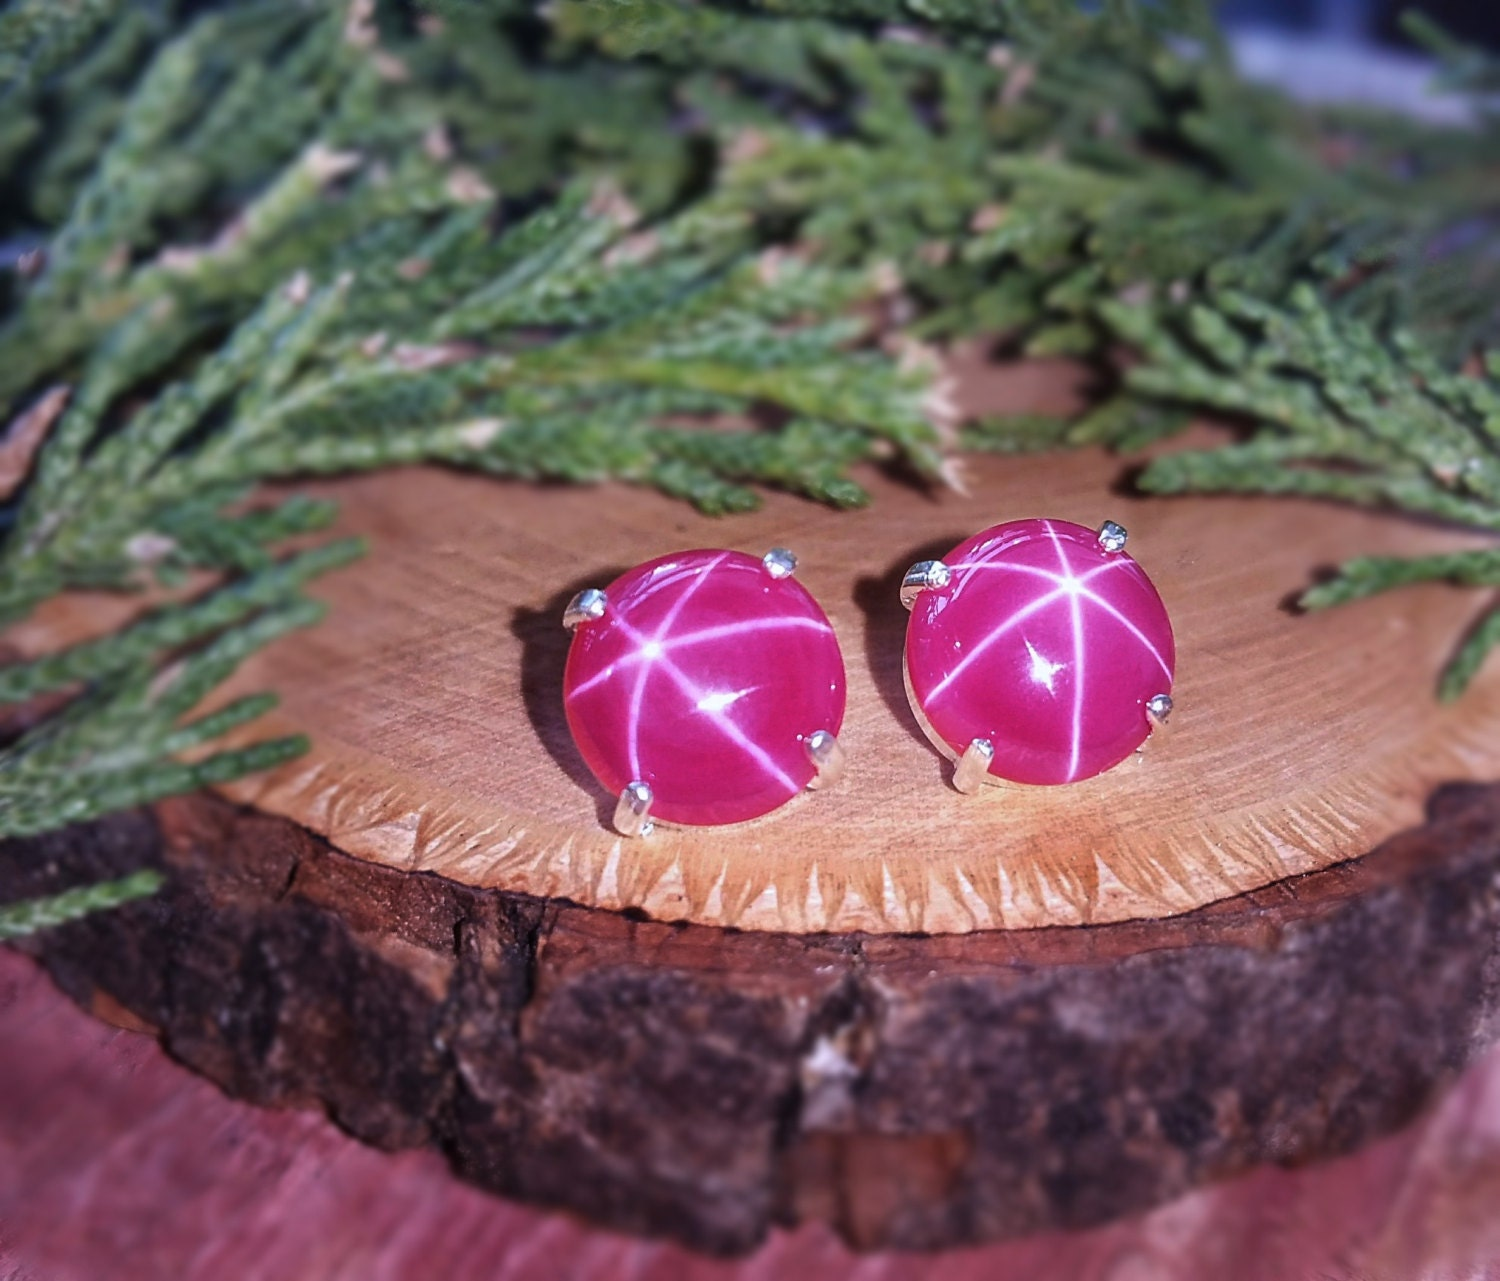 Large Star Ruby Studs, Star Ruby Earrings, Necklace Genuine Star Ruby,  Natural